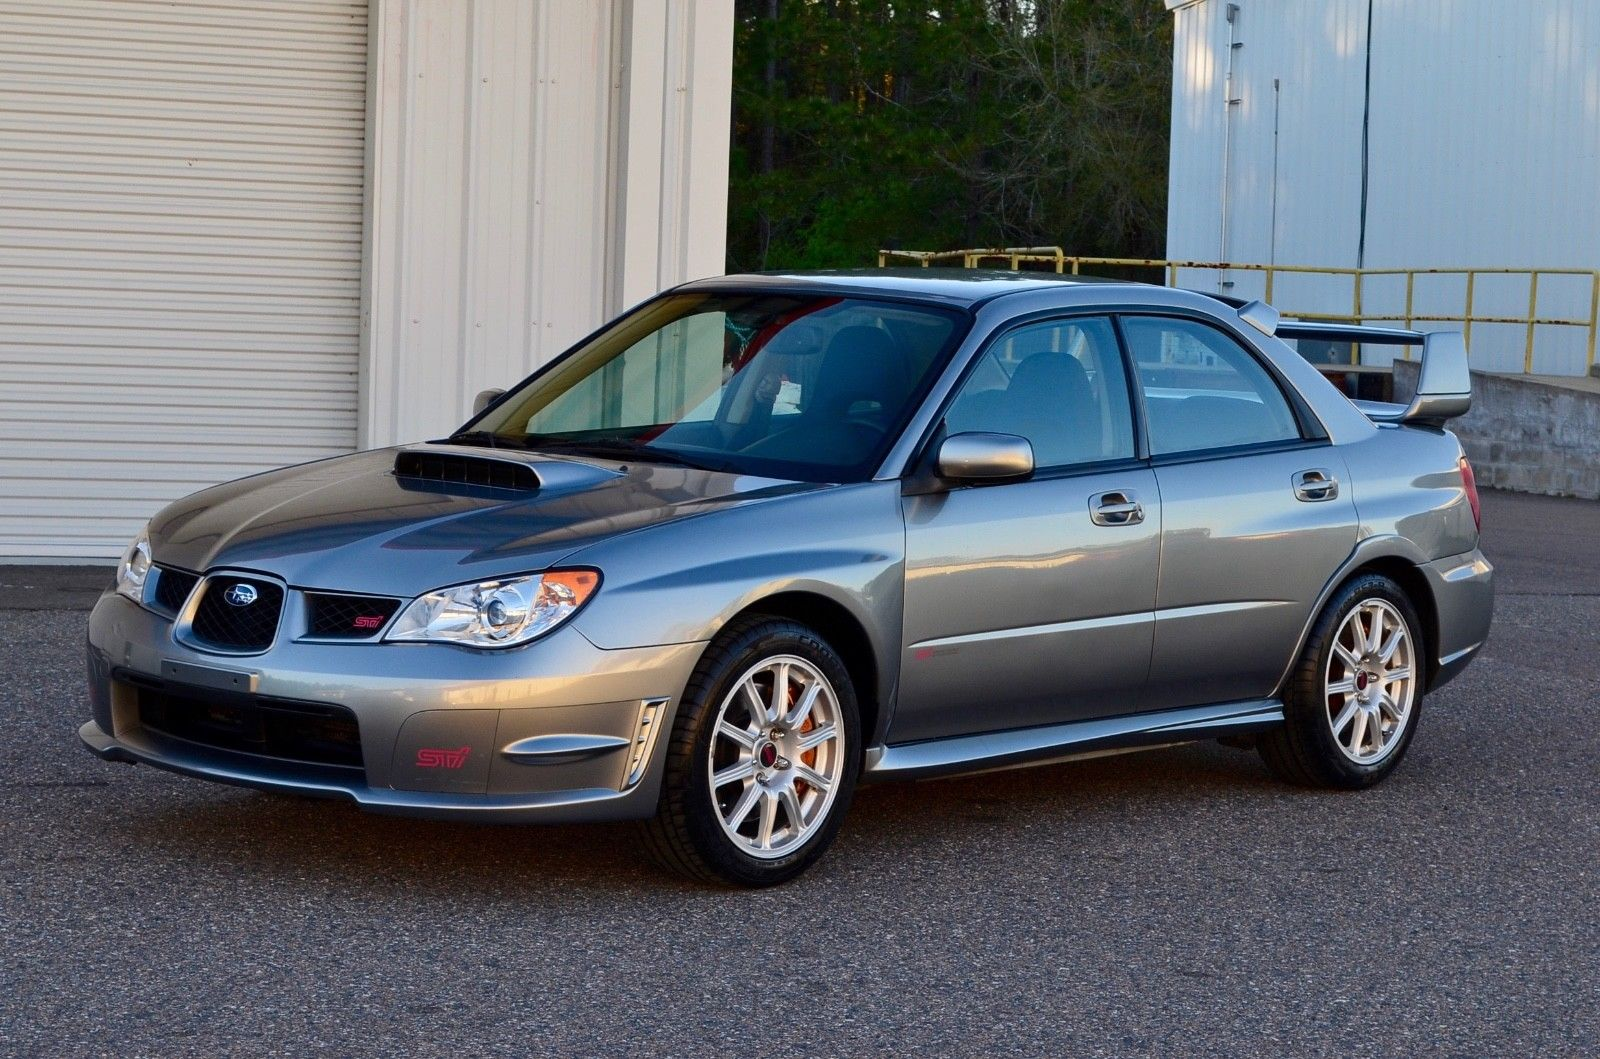 Awesome 2007 Subaru Impreza Wrx Sti Turbo Awd 6 Sd Manual Rally Evo S2000 Reserve No 2017 2018